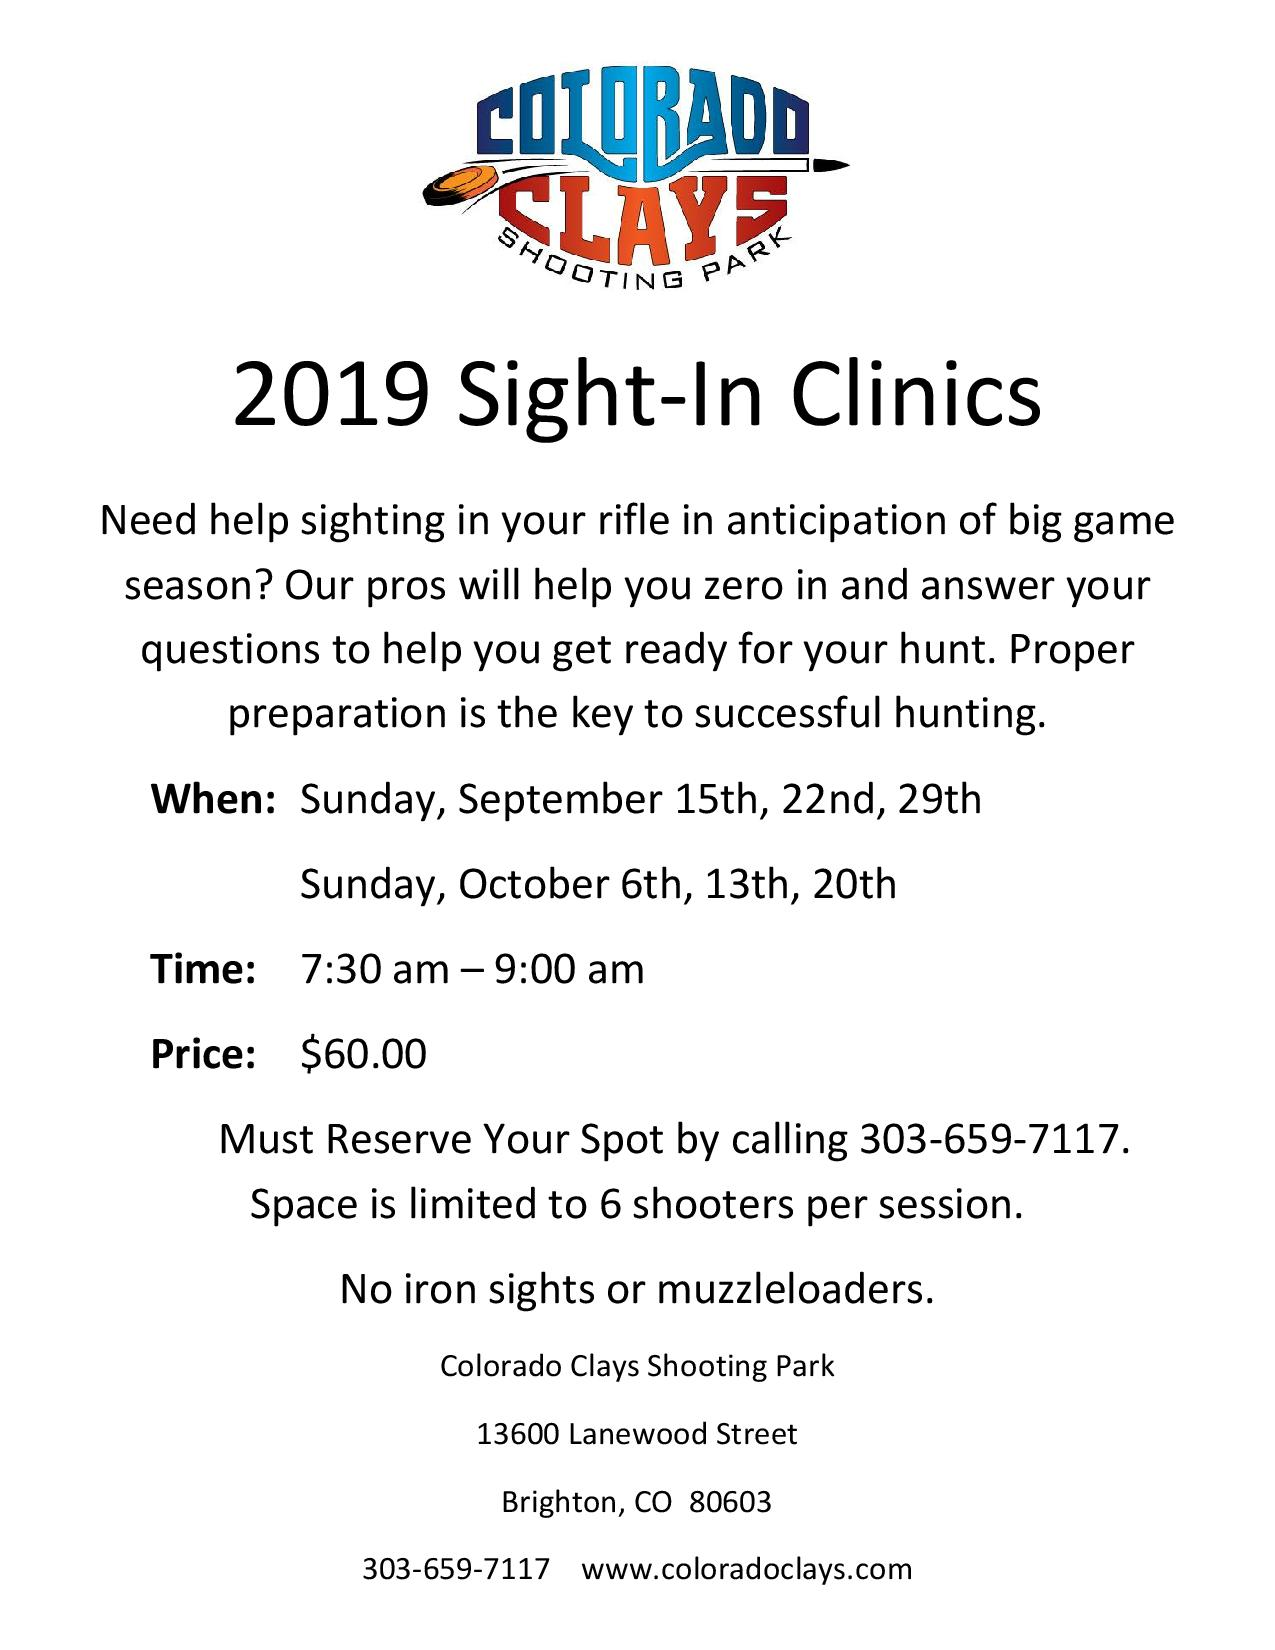 Rifle Sight-In Clinics